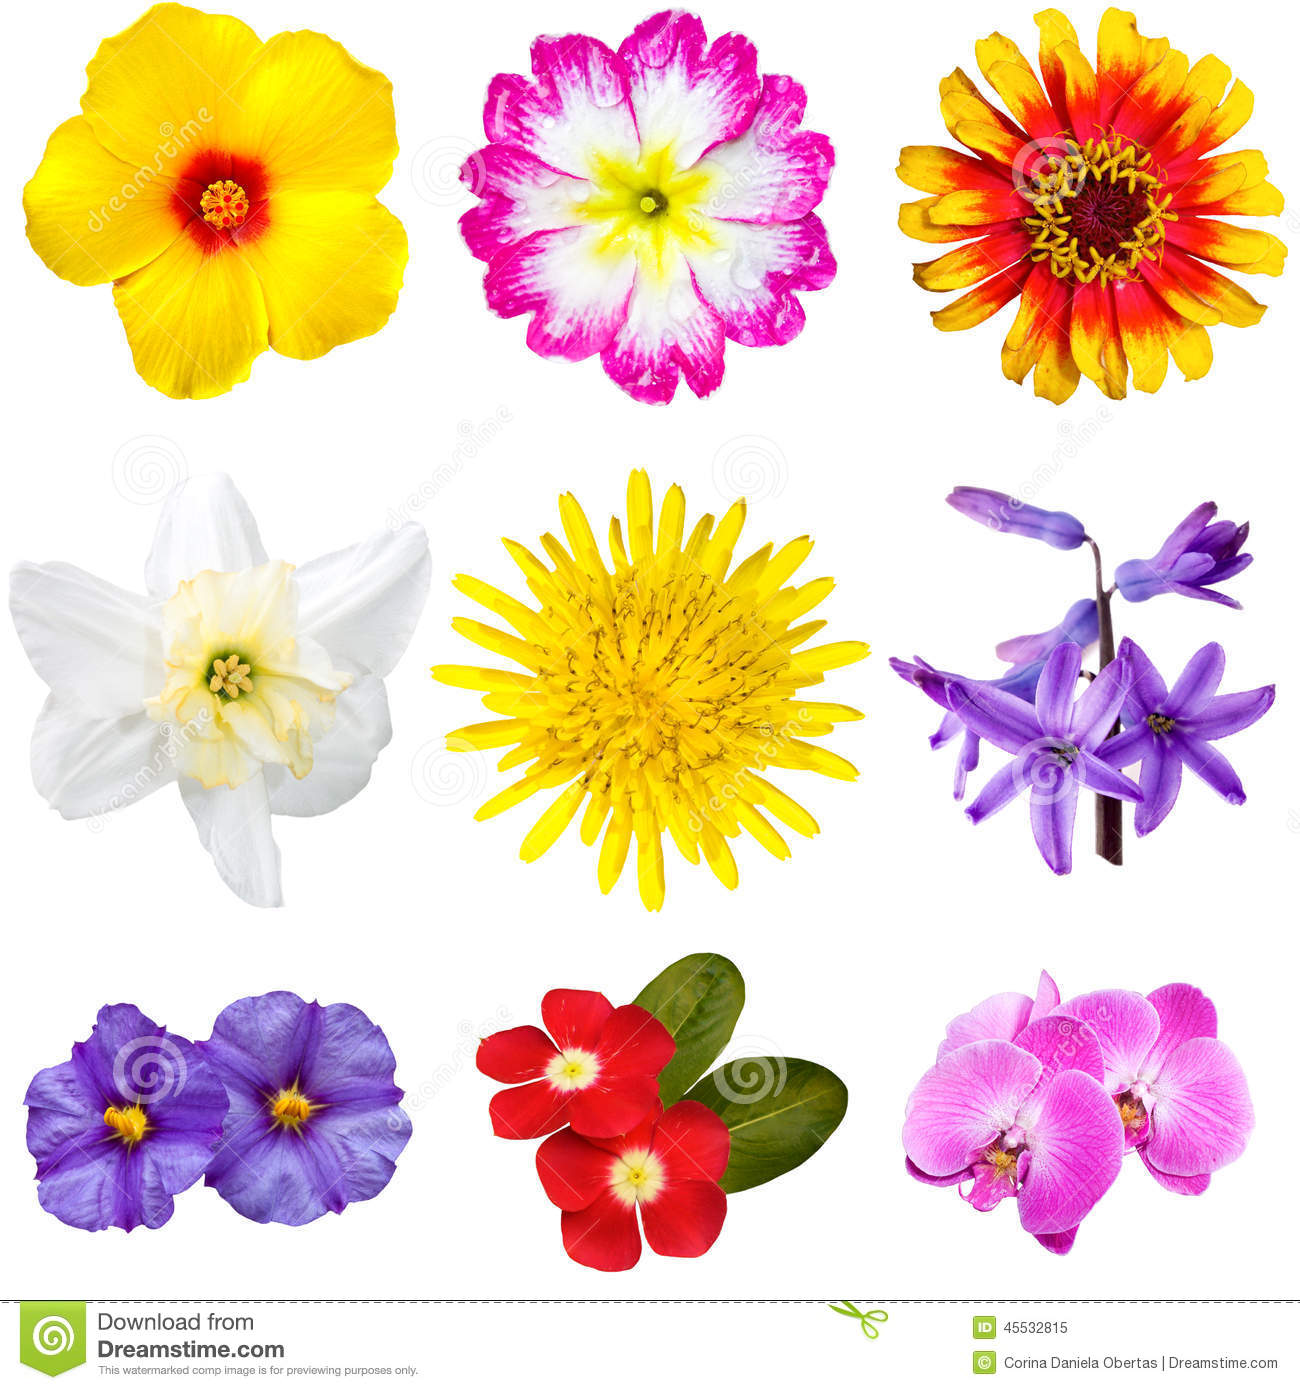 Colorful Flowers Cutouts Stock Image. Image Of Flower